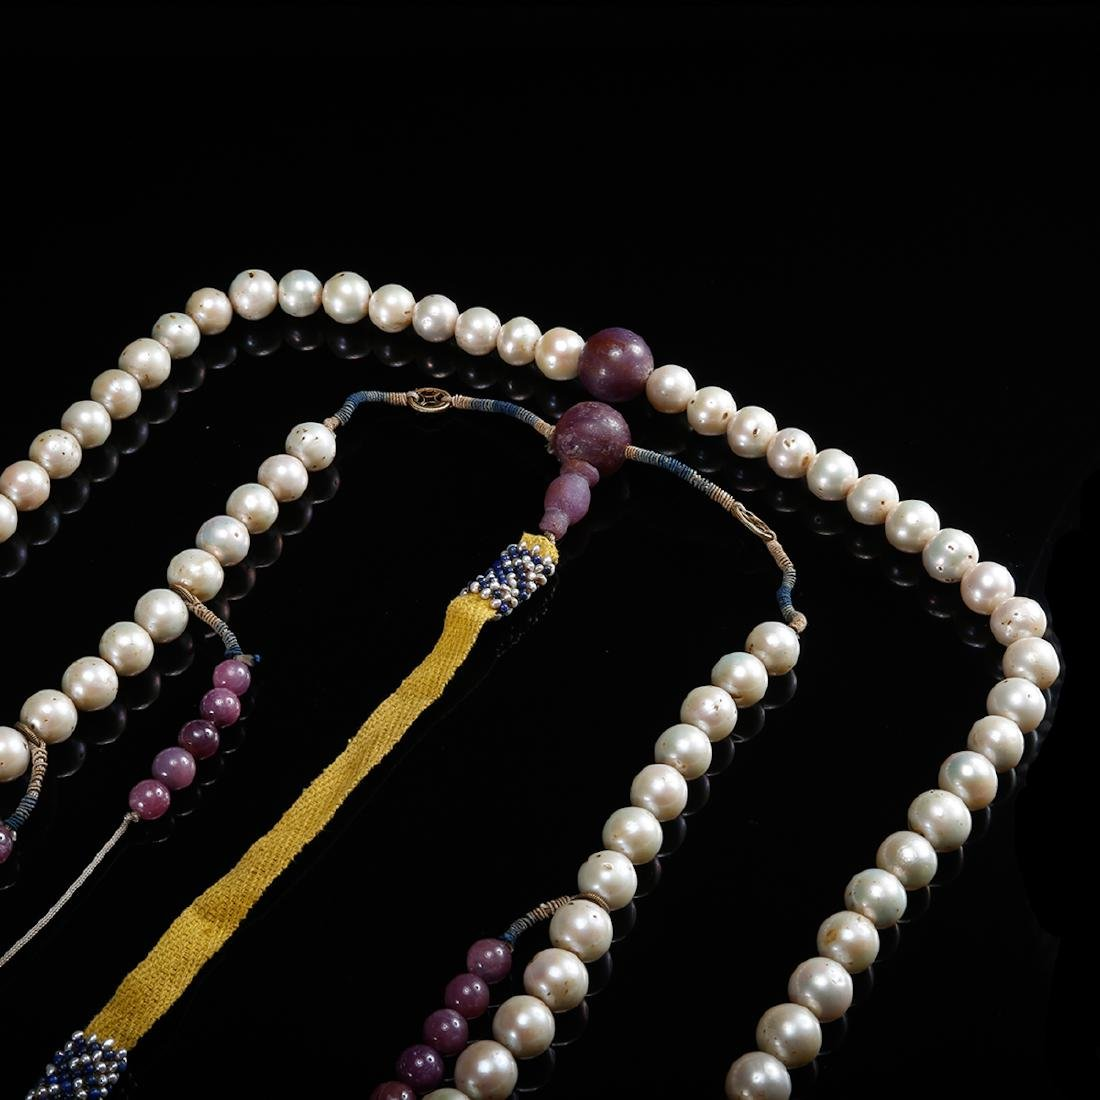 CHINESE PEARL COURT BEADS NECKLACE, QING - 5